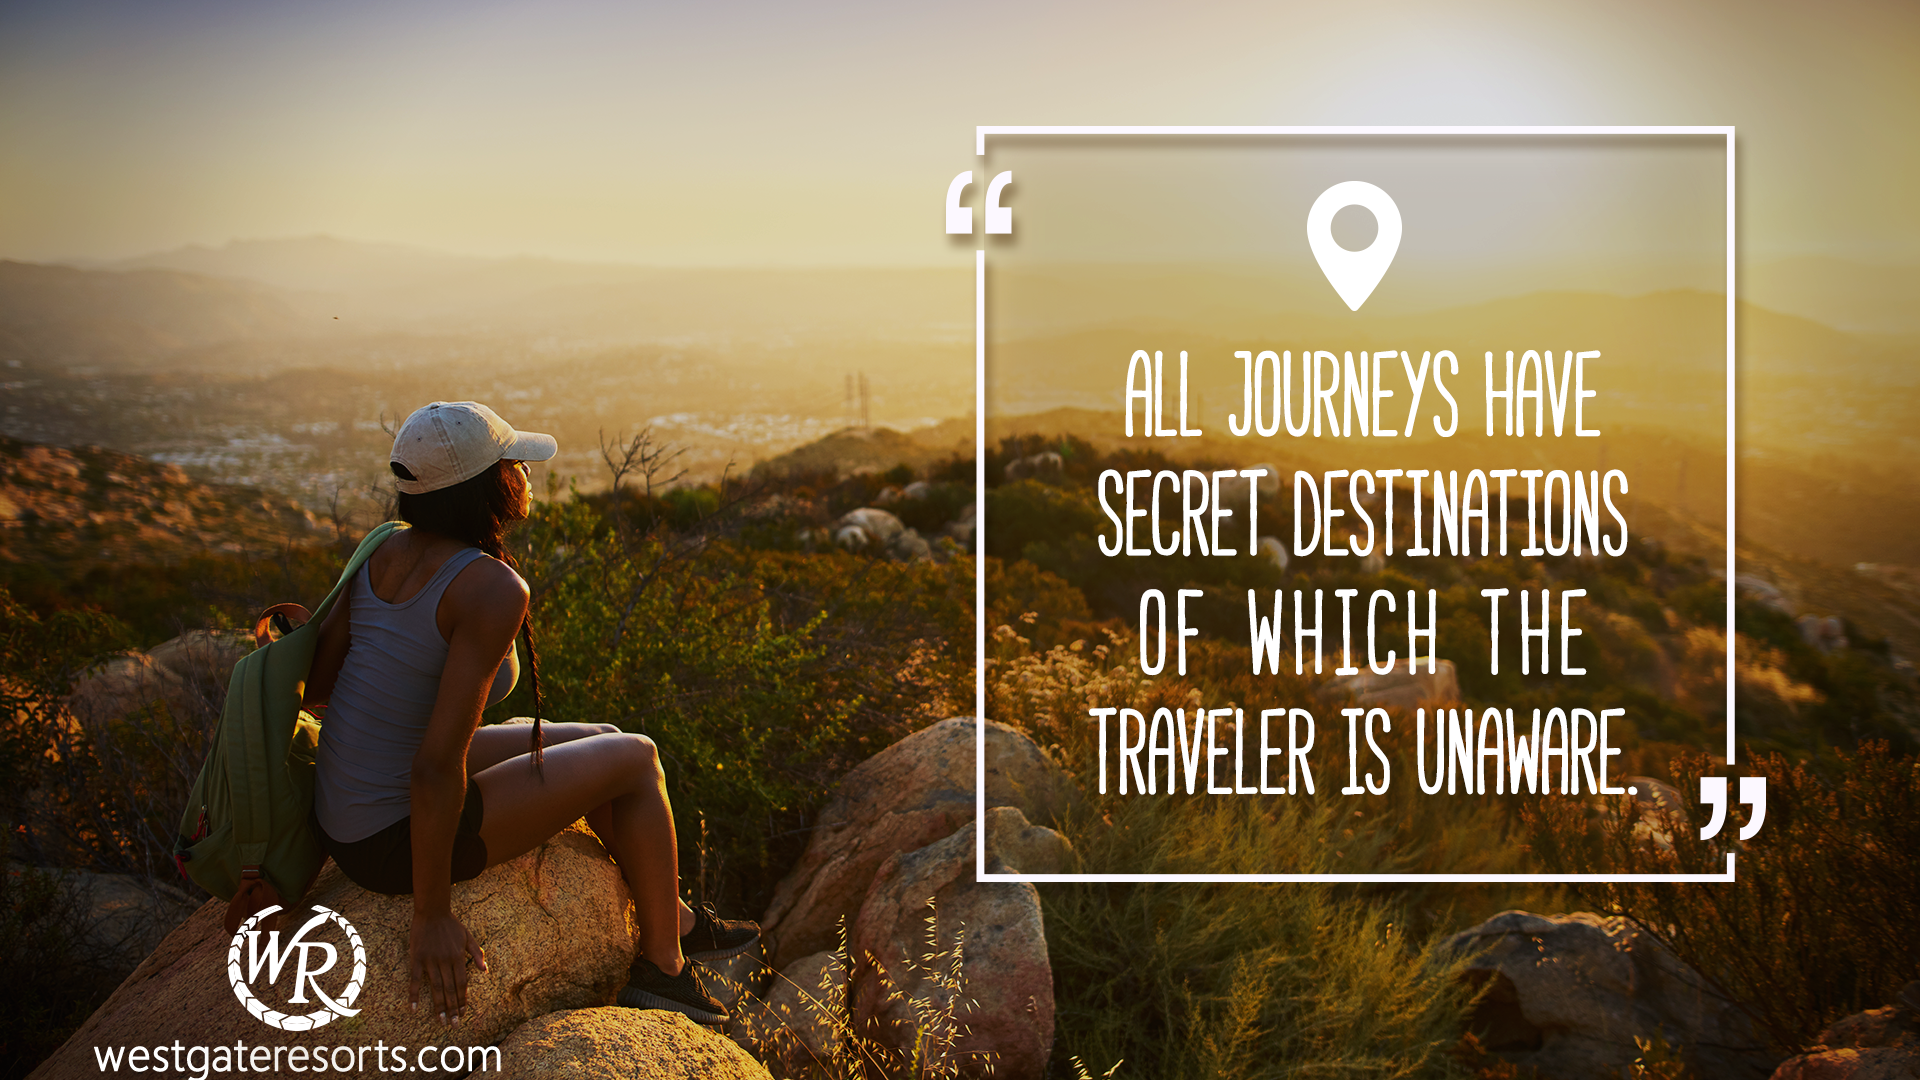 All Journeys Have Secret Destinations Of Which The Traveler Is